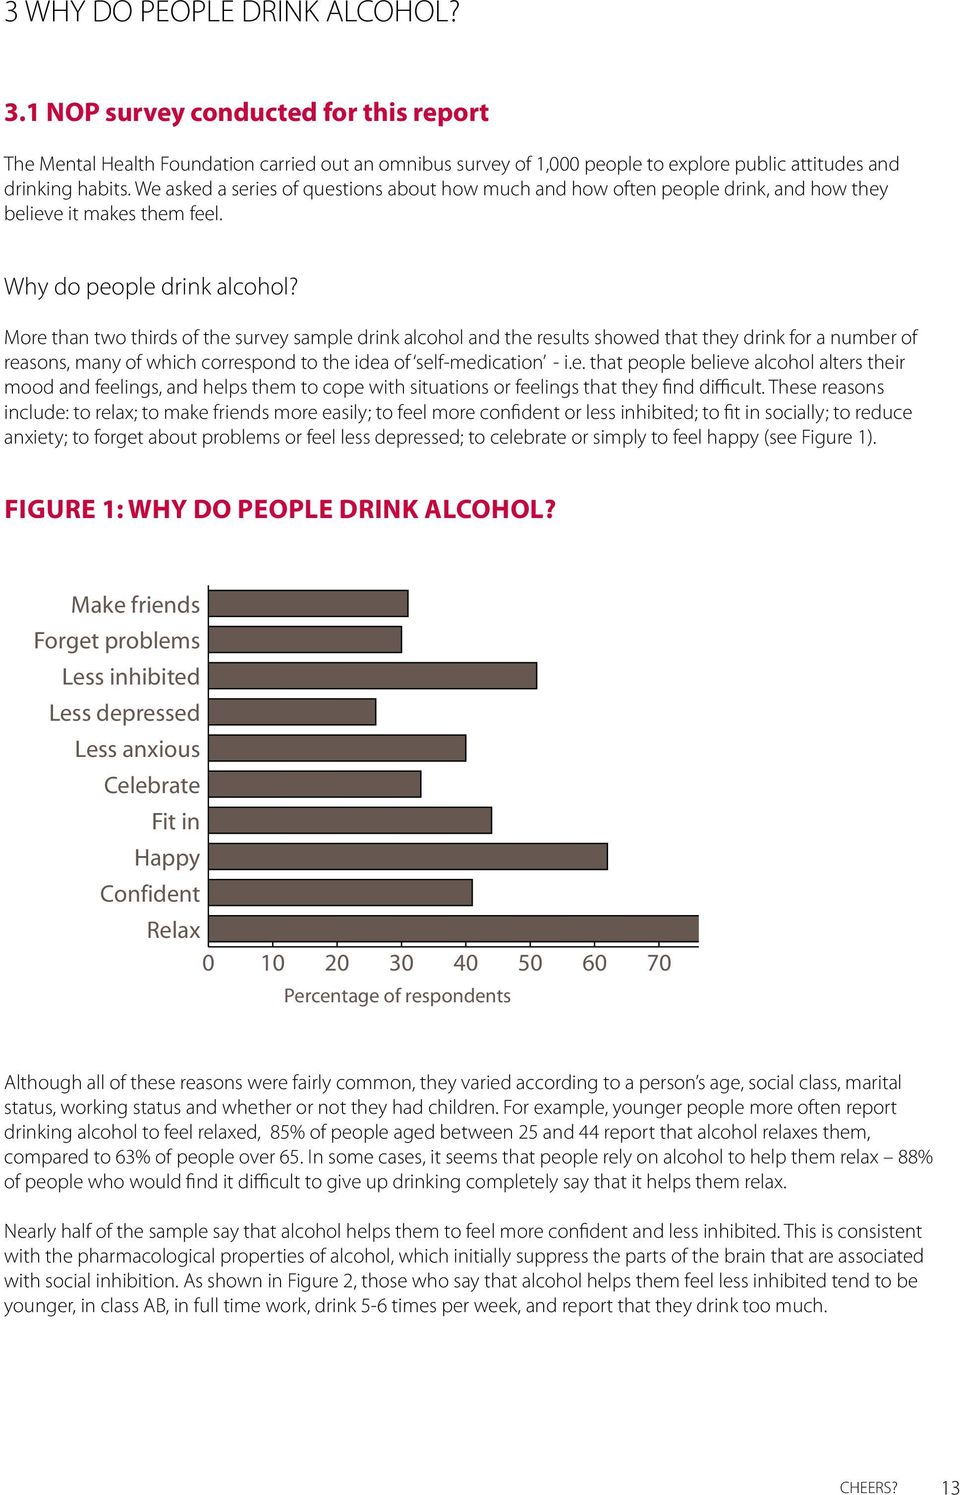 More than two thirds of the survey sample drink alcohol and the results showed that they drink for a number of reasons, many of which correspond to the idea of self-medication - i.e. that people believe alcohol alters their mood and feelings, and helps them to cope with situations or feelings that they find difficult.